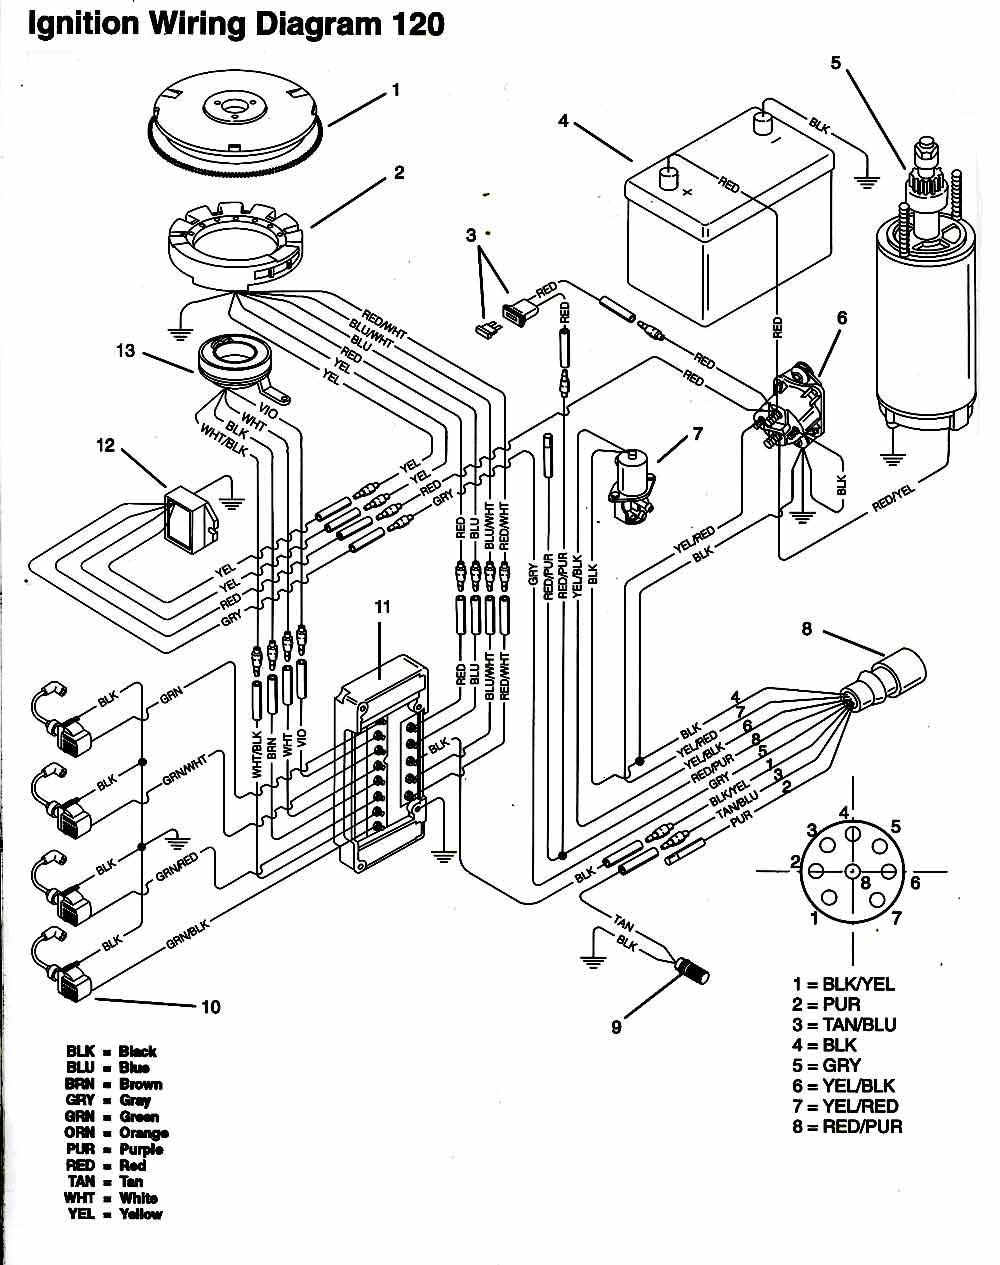 medium resolution of 1991 mercury capri fuse box diagram wiring library rh 10 skriptoase de